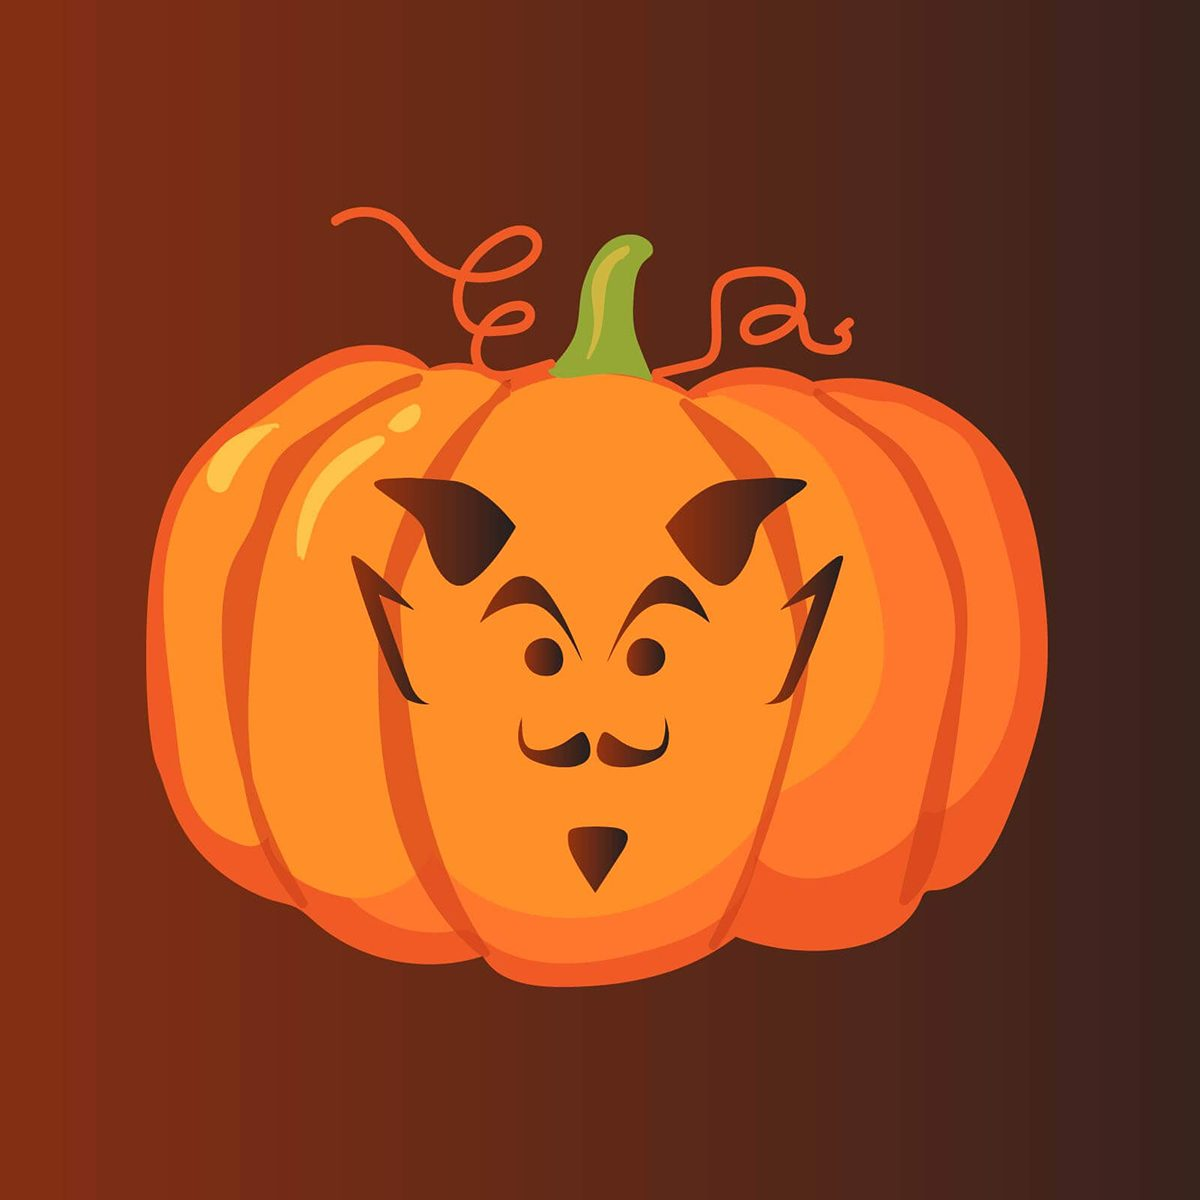 31 Free Pumpkin Carving Stencils To Take Your Jack O Lantern To The Next Level Taste Of Home,Tuxedo Cats Wallpaper